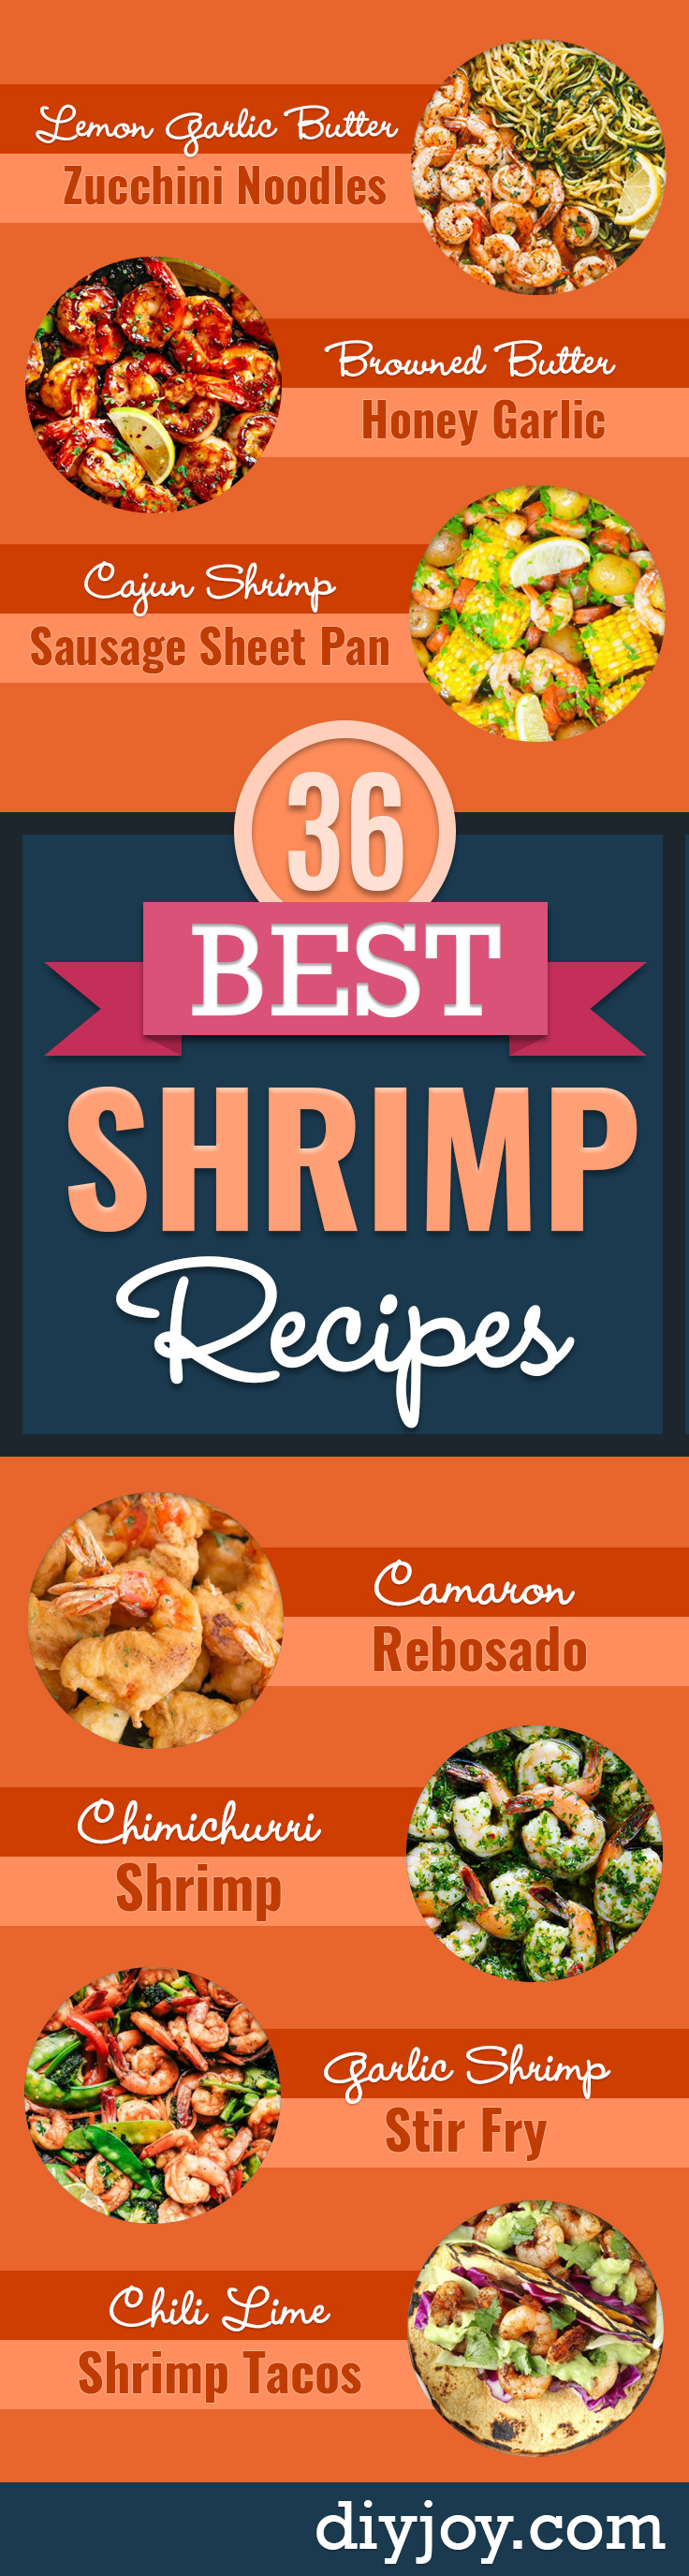 Shrimp Recipes - Healthy, Easy Recipe Ideas for Dinner Using Shrimp - Grilled, Creamy Baked Pasta, Fried, Spicy Asian Style, Mexican, Sauteed Garlic